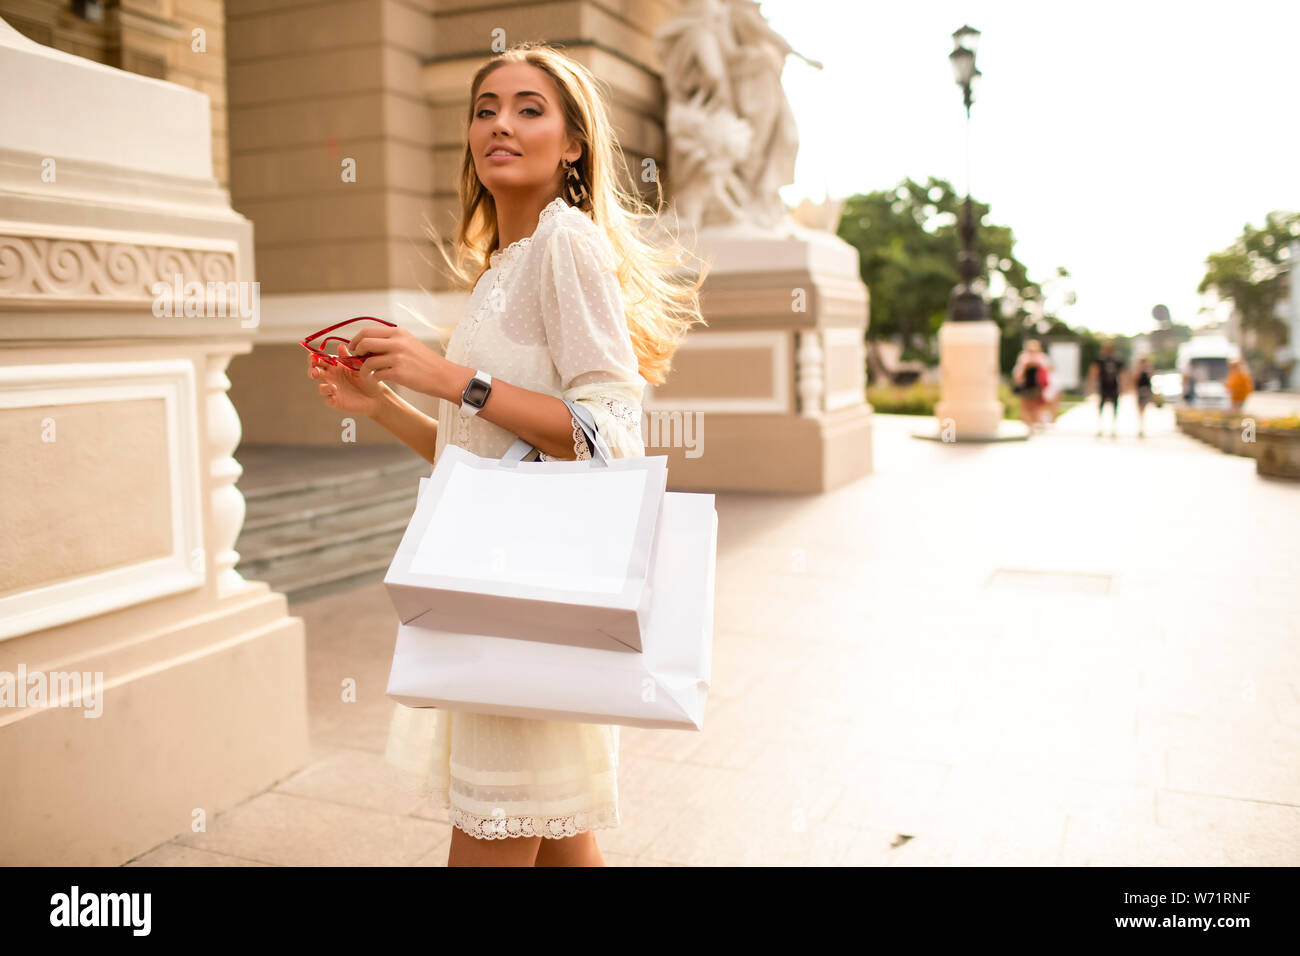 Fashionable lady standing outdoor near the beautiful building with bags on her arm, after a long shopping. She wearing light summer dress and accessor Stock Photo